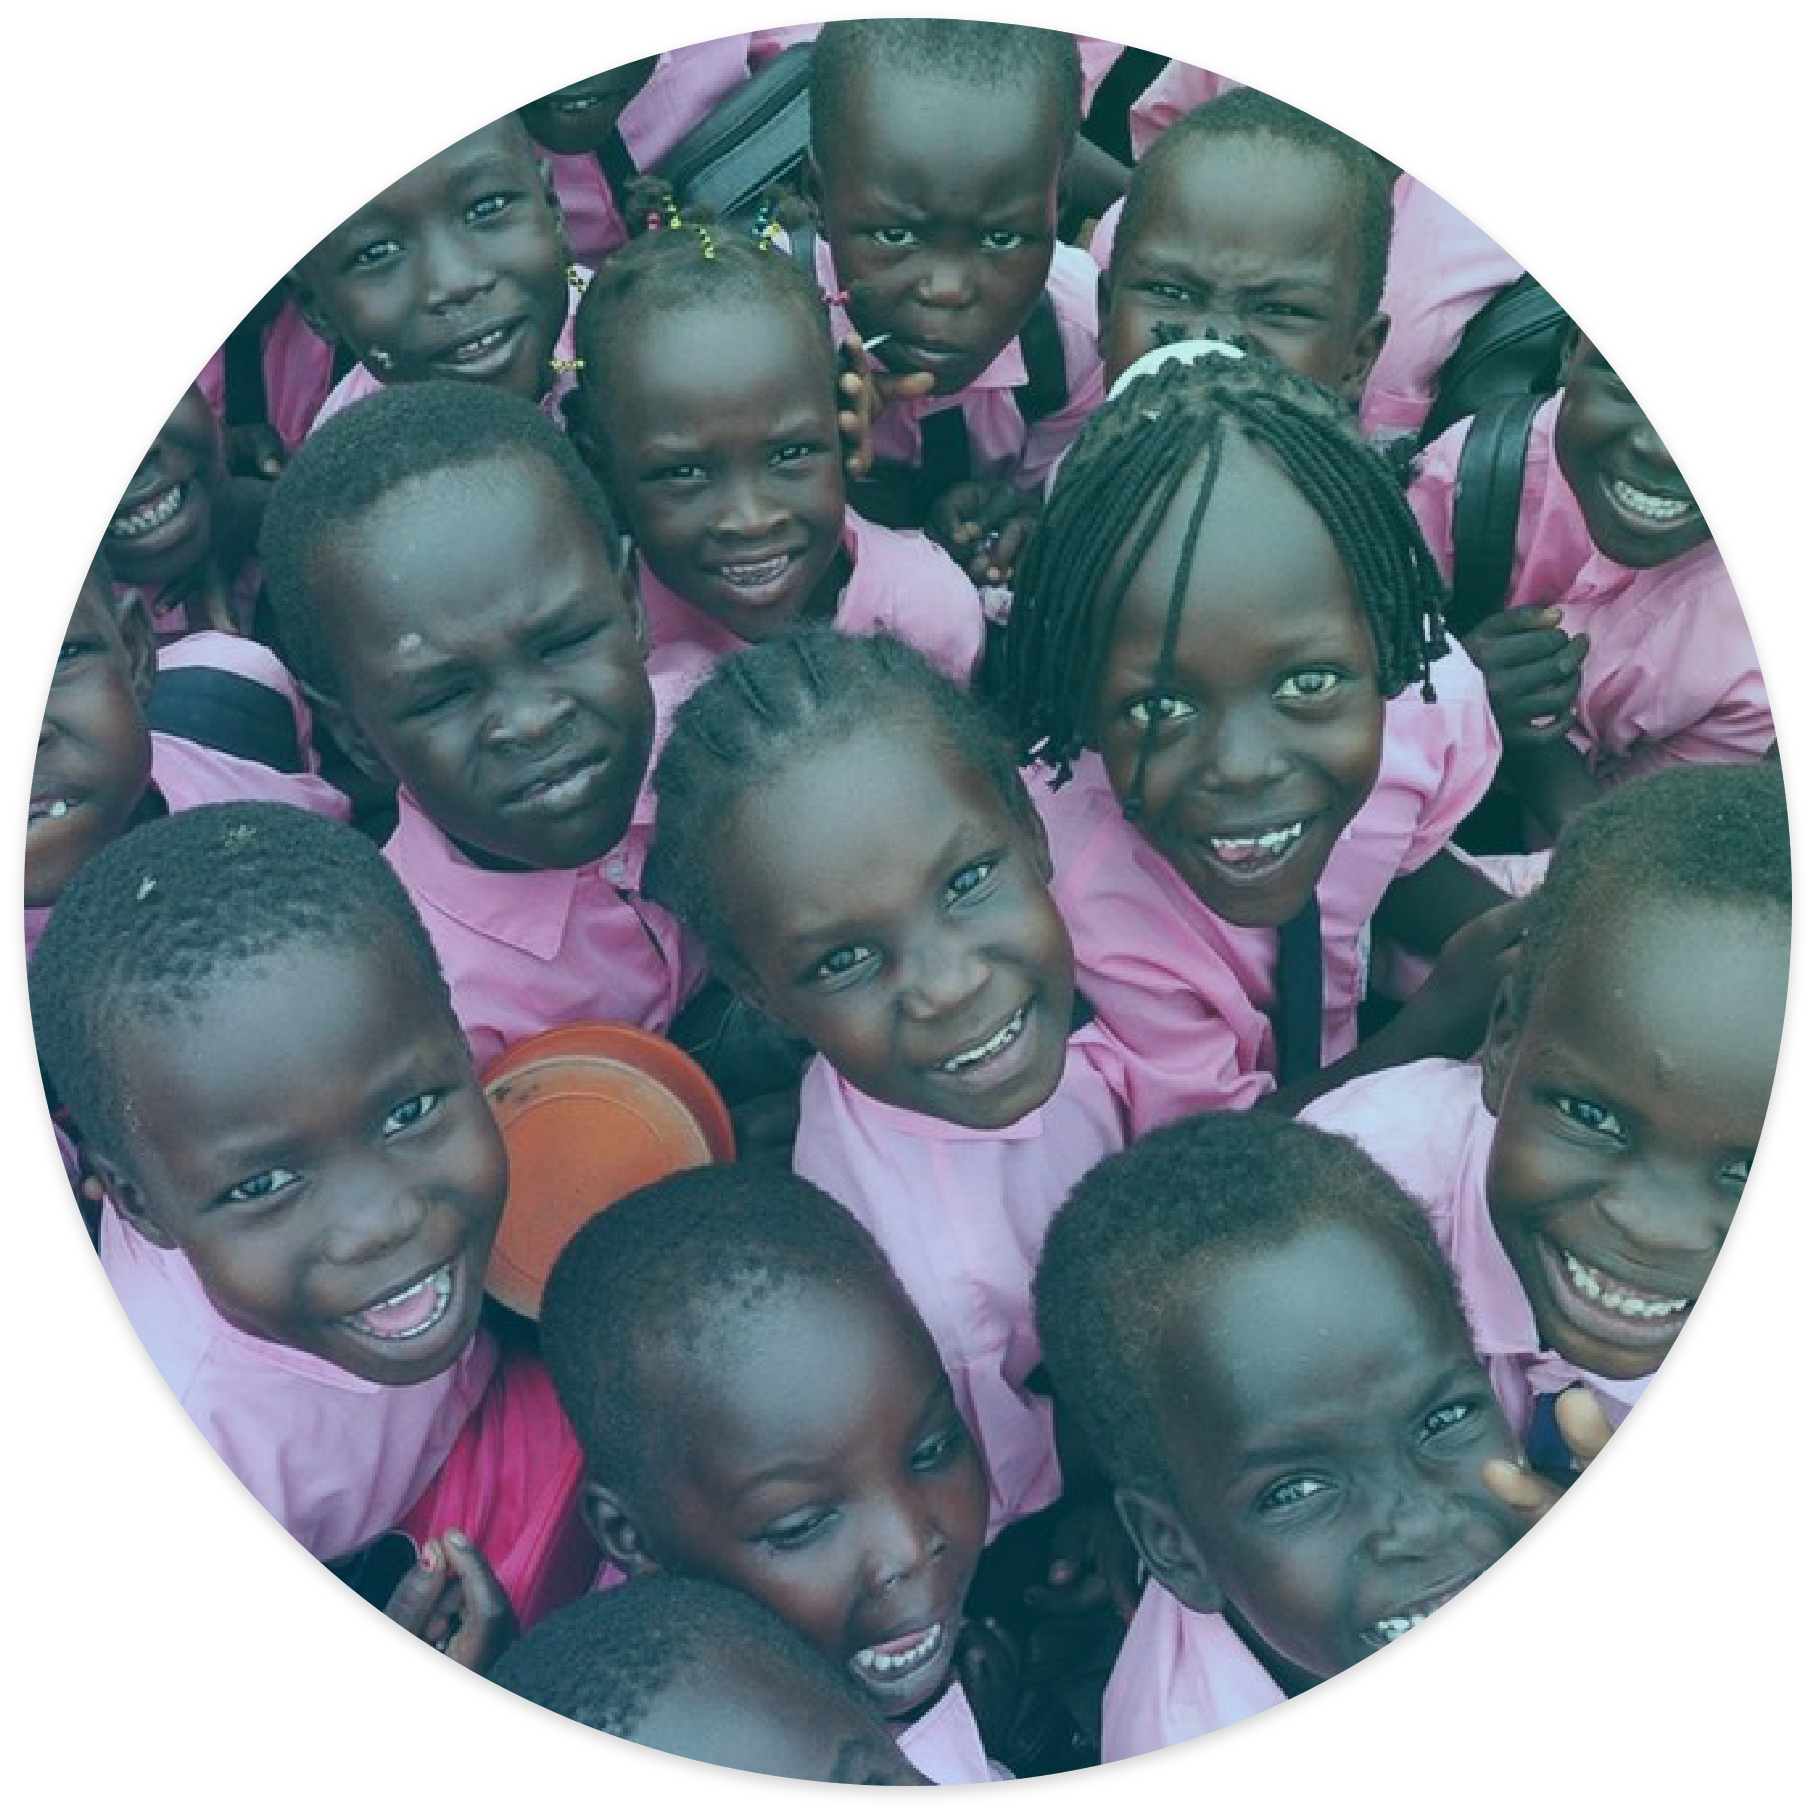 Our Pledge - 1% of our profits are pledged to provide life-saving vitamins to at-risk populations around the world. Learn more about Pledge 1% here.